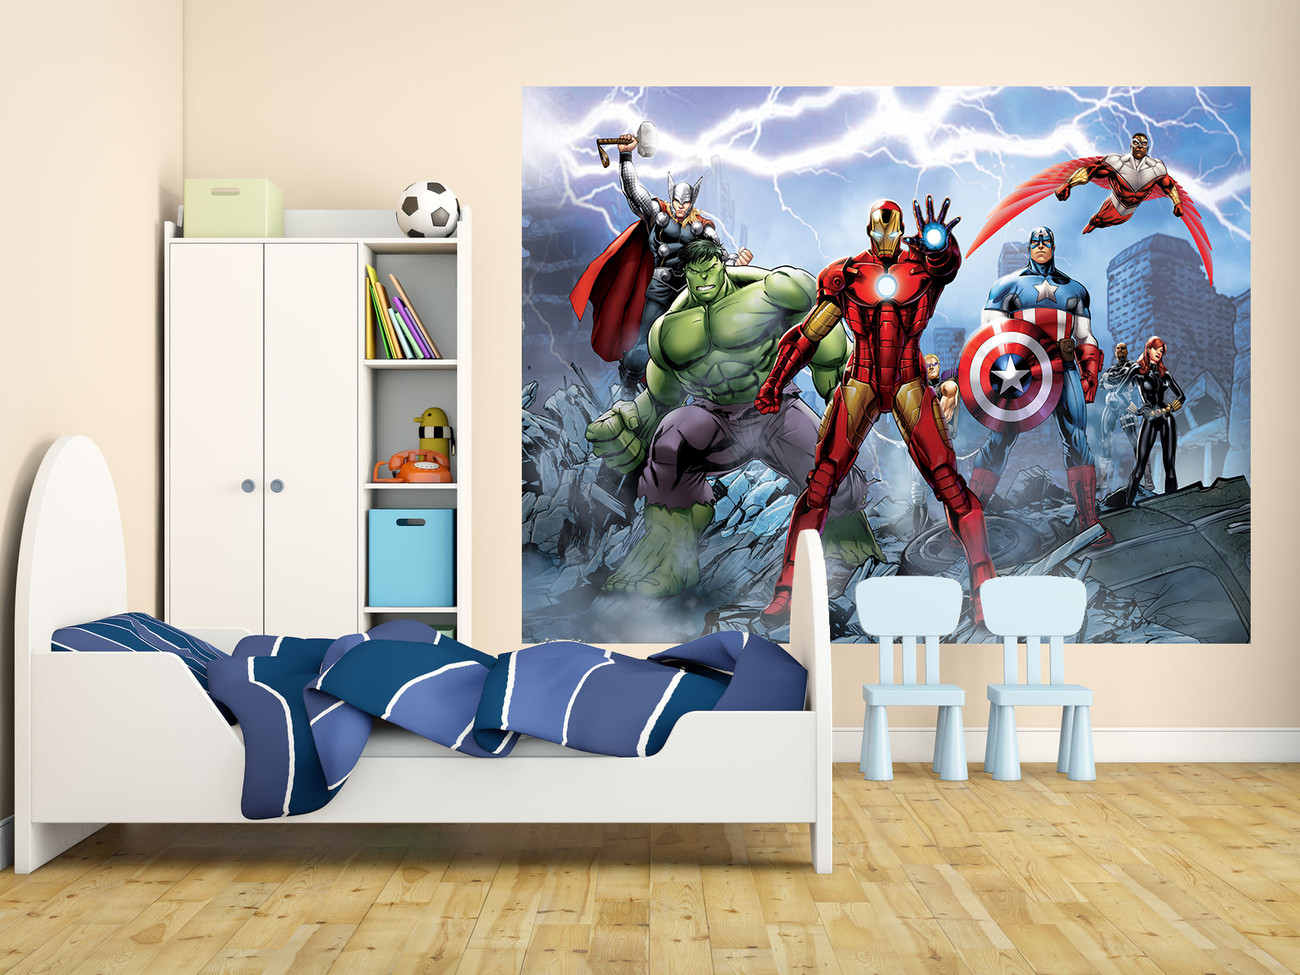 Avengers marvel wall mural buy at europosters for Avengers wall mural uk